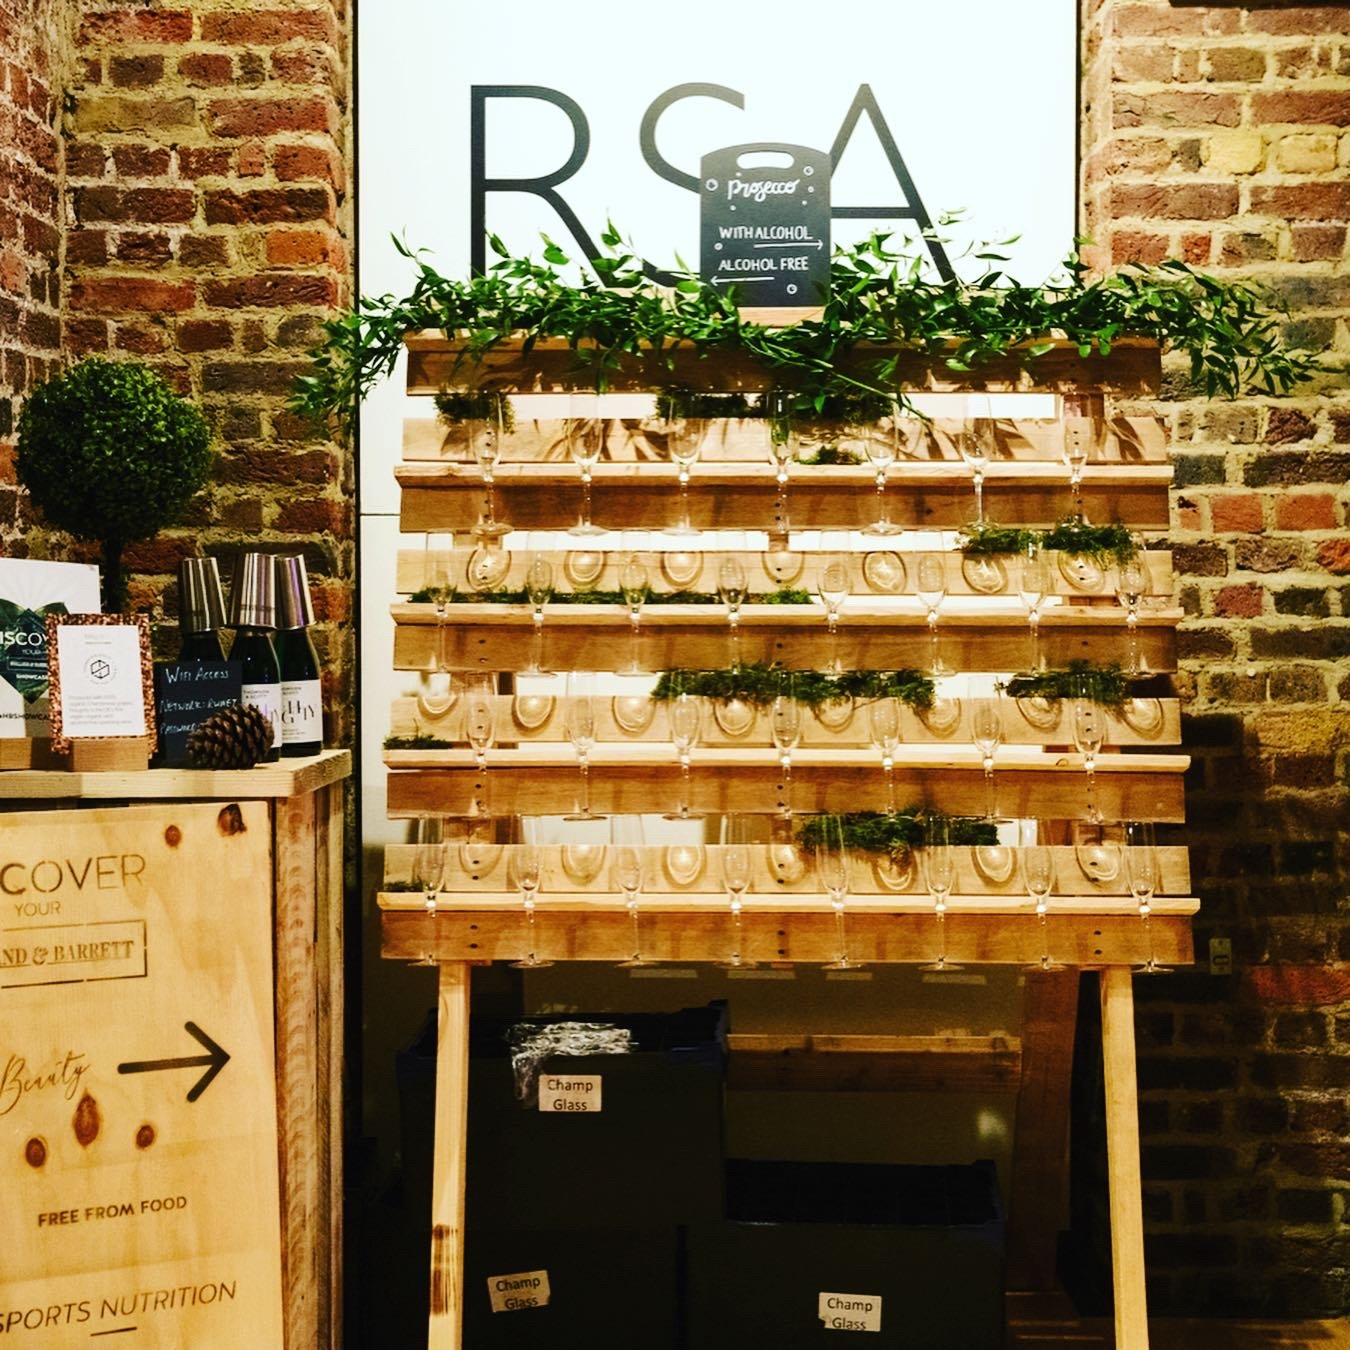 Holland & barrett annual press event at RSA in London